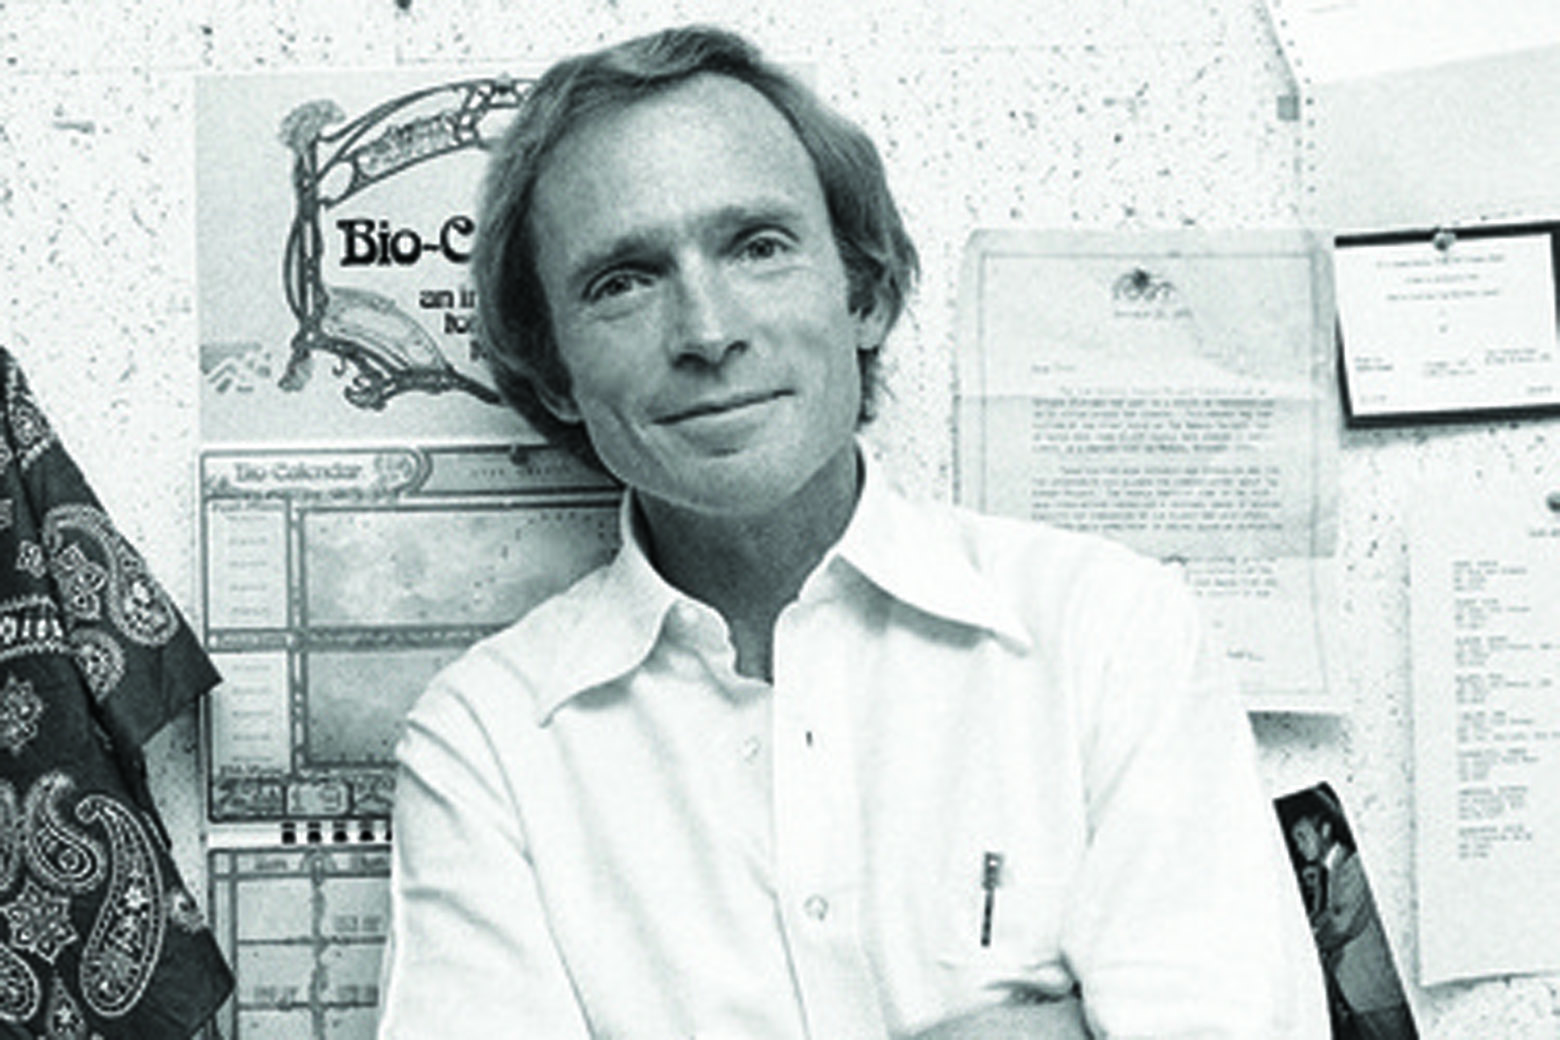 Talk show icon Dick Cavett dishes celebrity stories